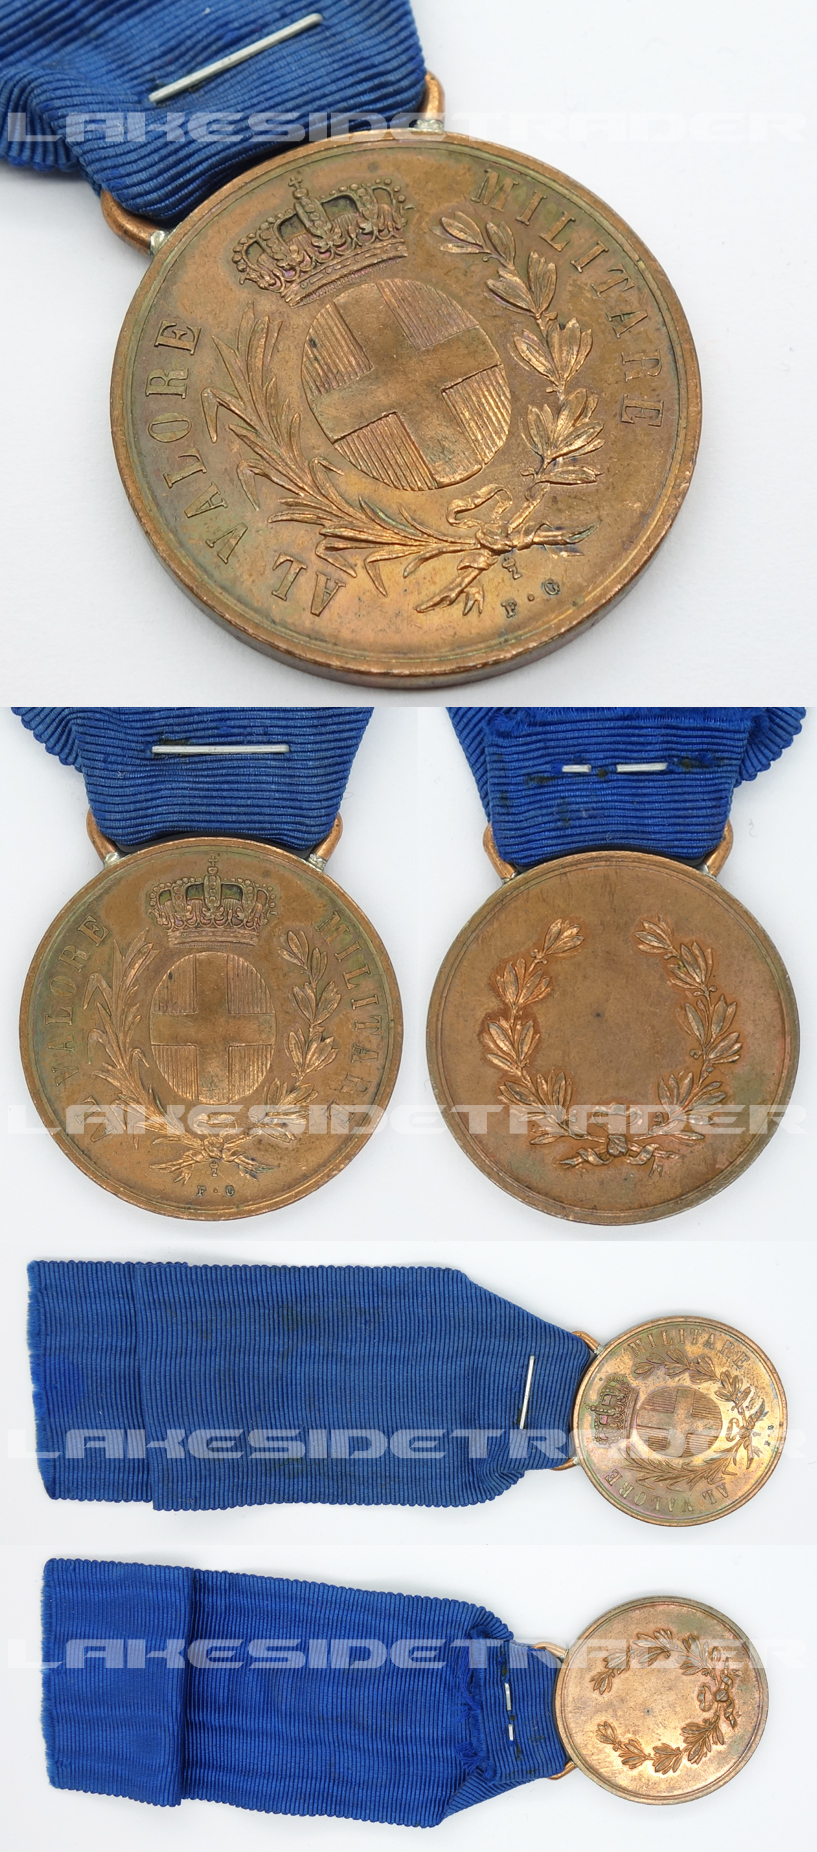 Italian Al Valore Militare Medal in Bronze by FG